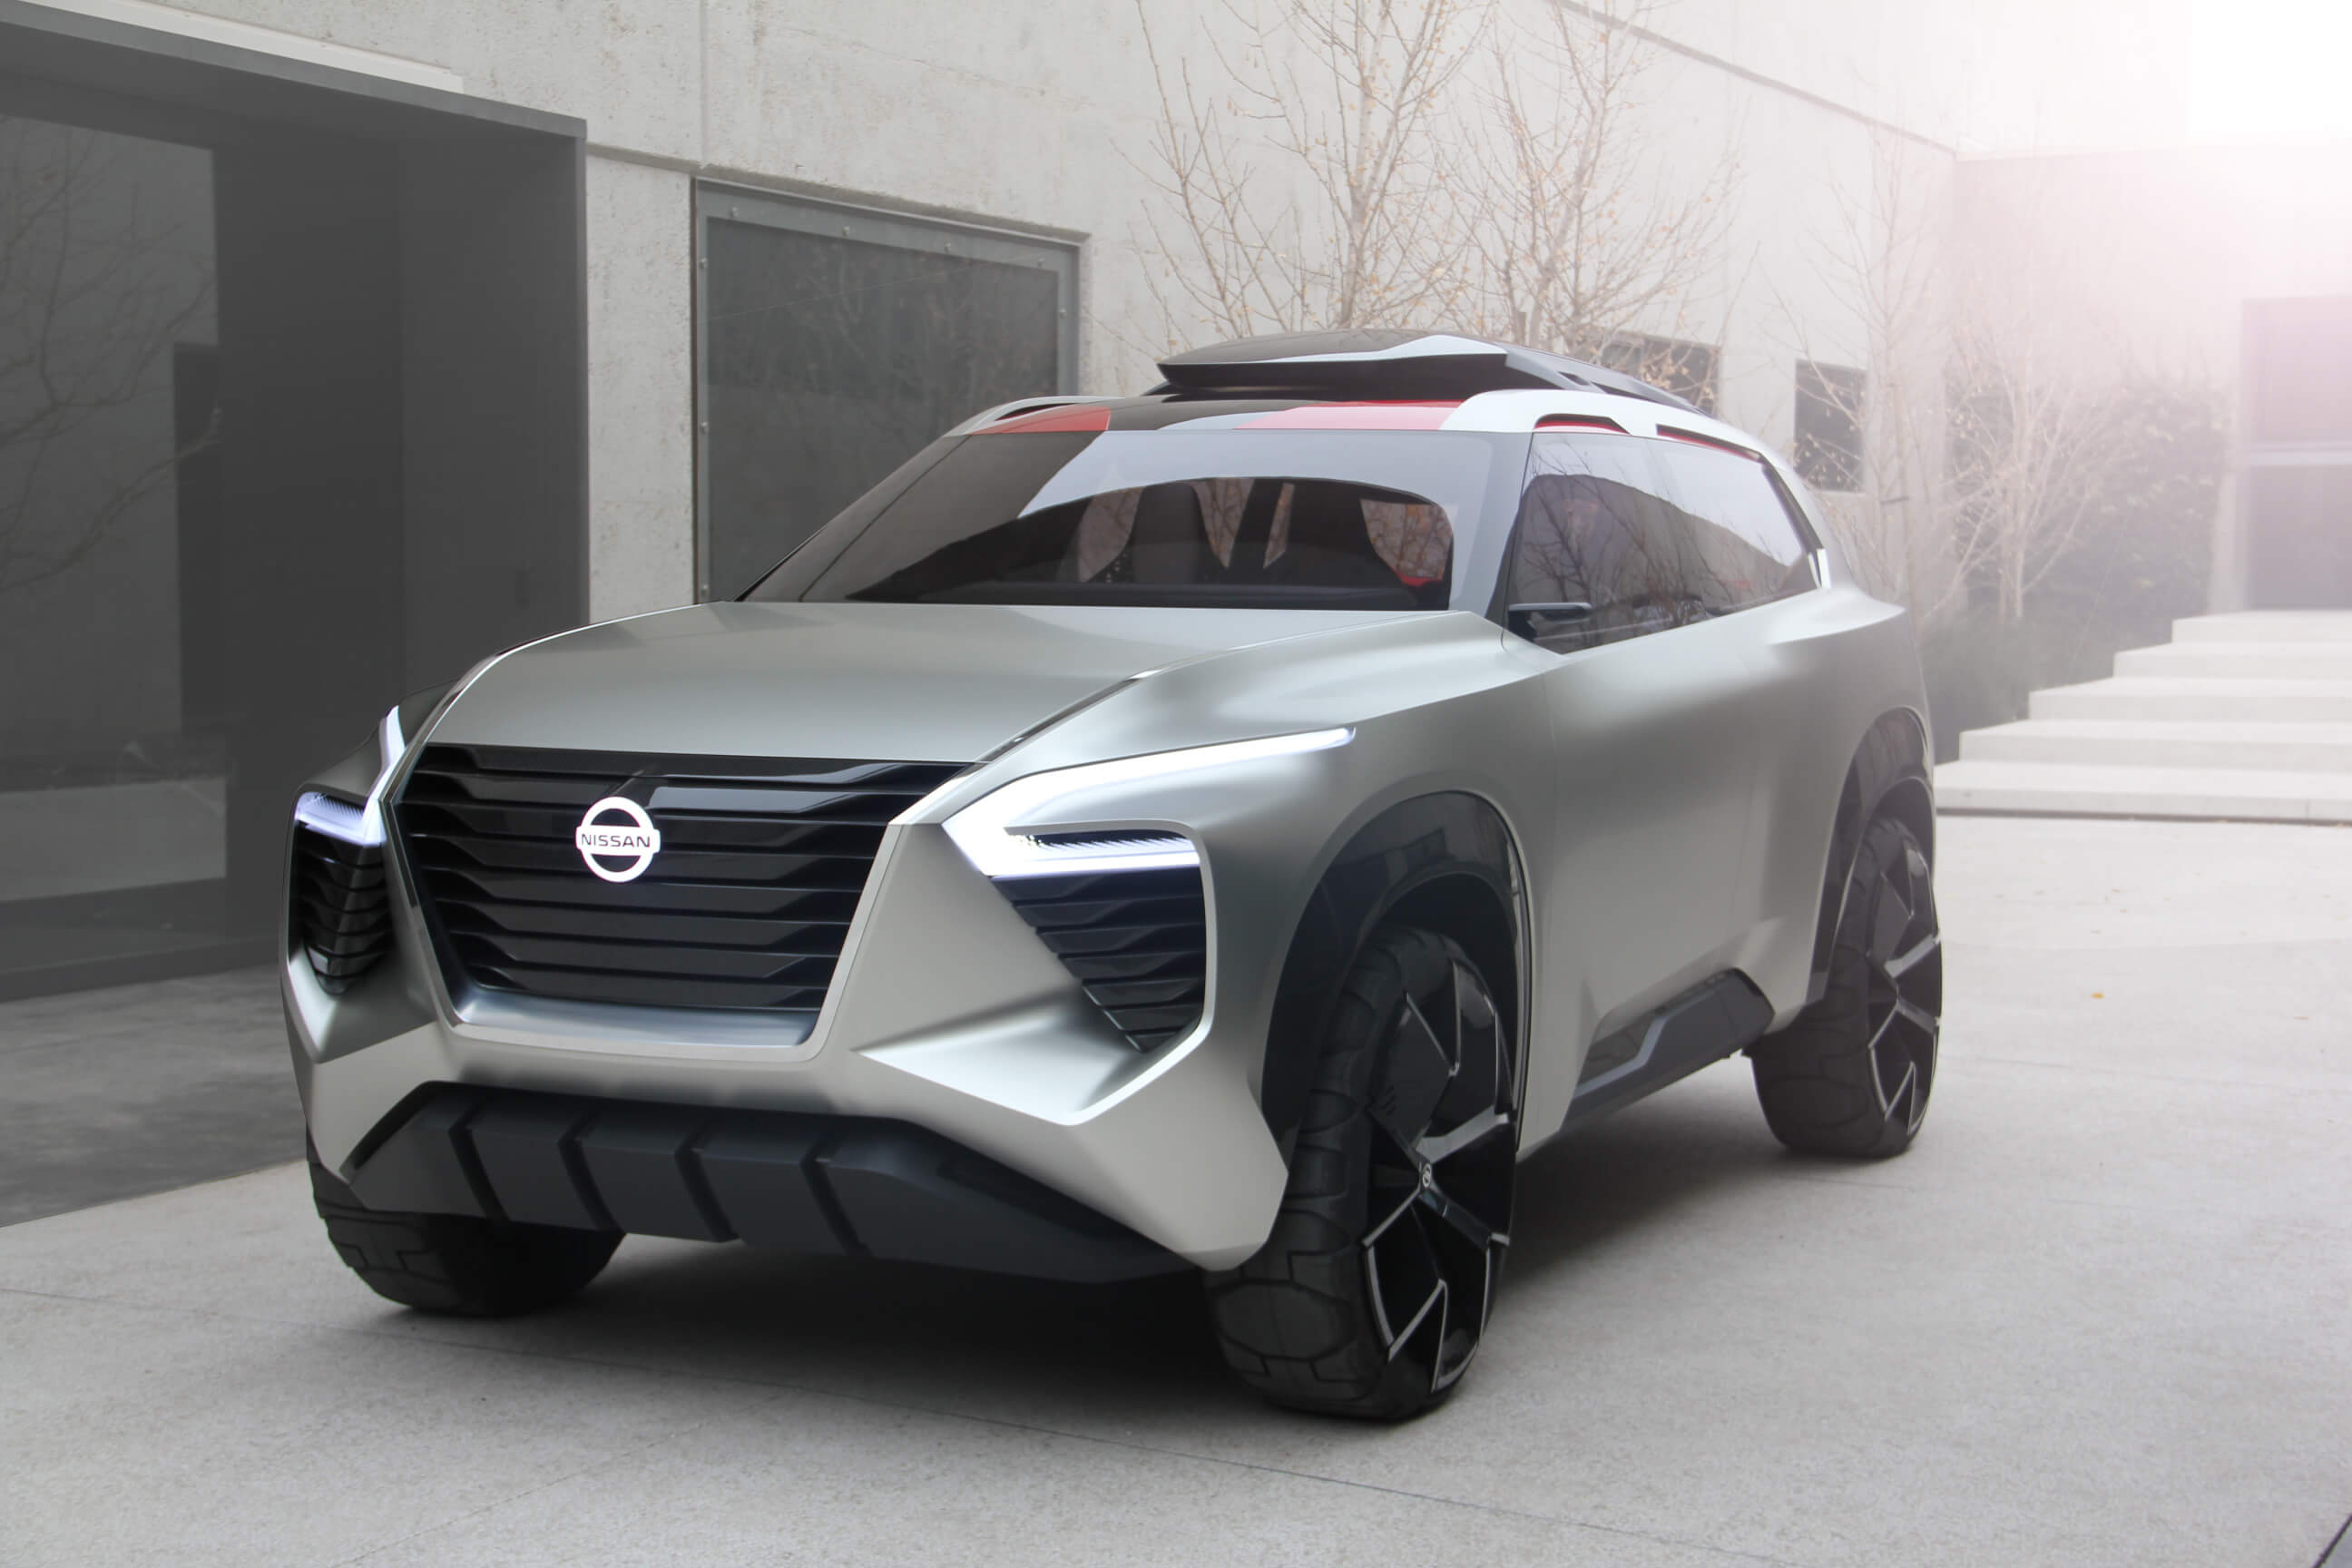 Nissan Unveils Xmotion Concept Car At 2018 North American